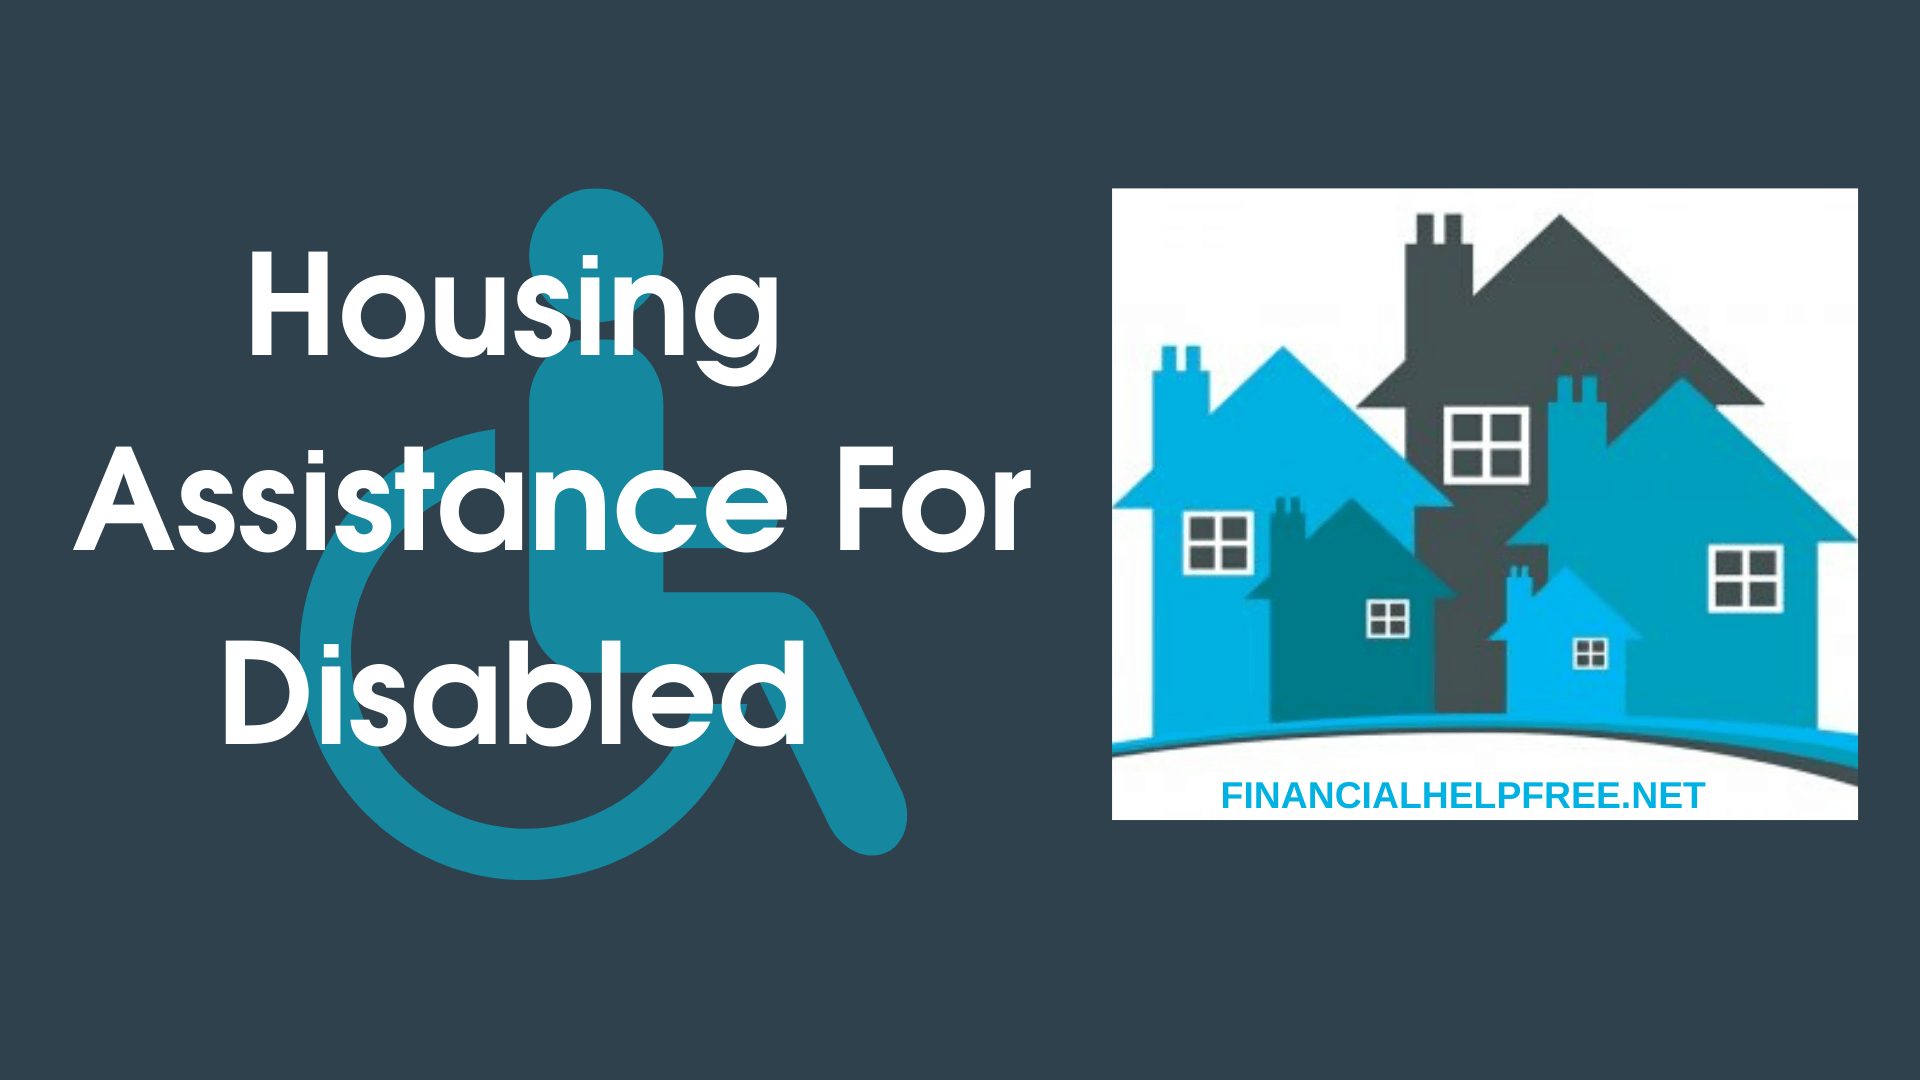 Housing Assistance For Disabled